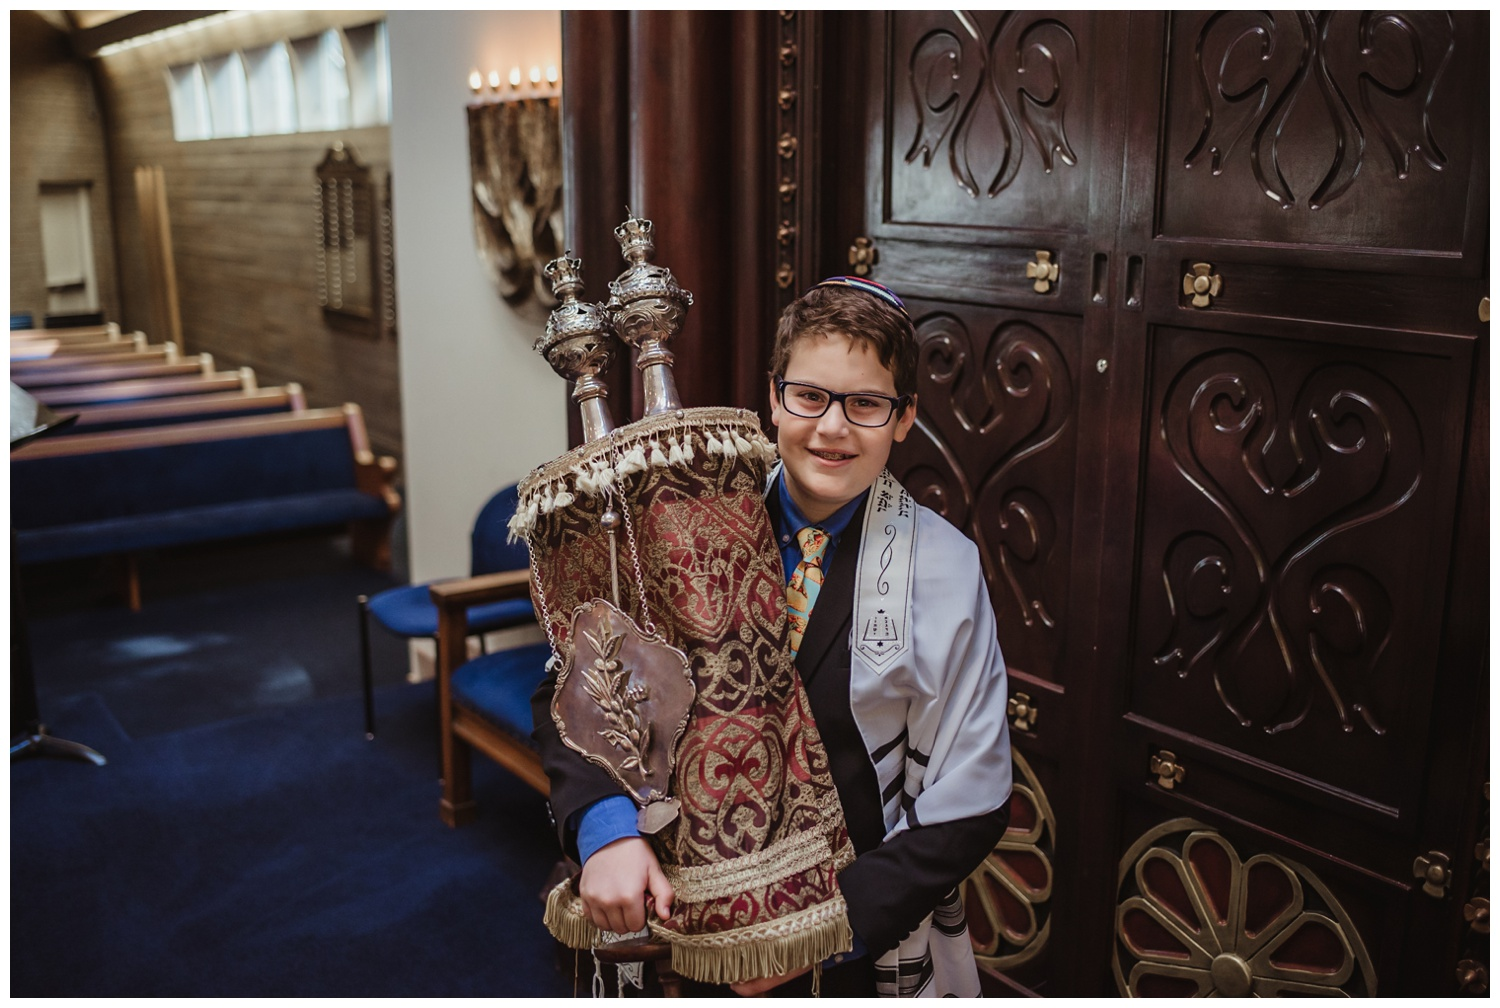 The bar mitzvah boy posed with the Torah in front of the ark at Temple Beth Or in Raleigh, NC, picture by Rose Trail Images.